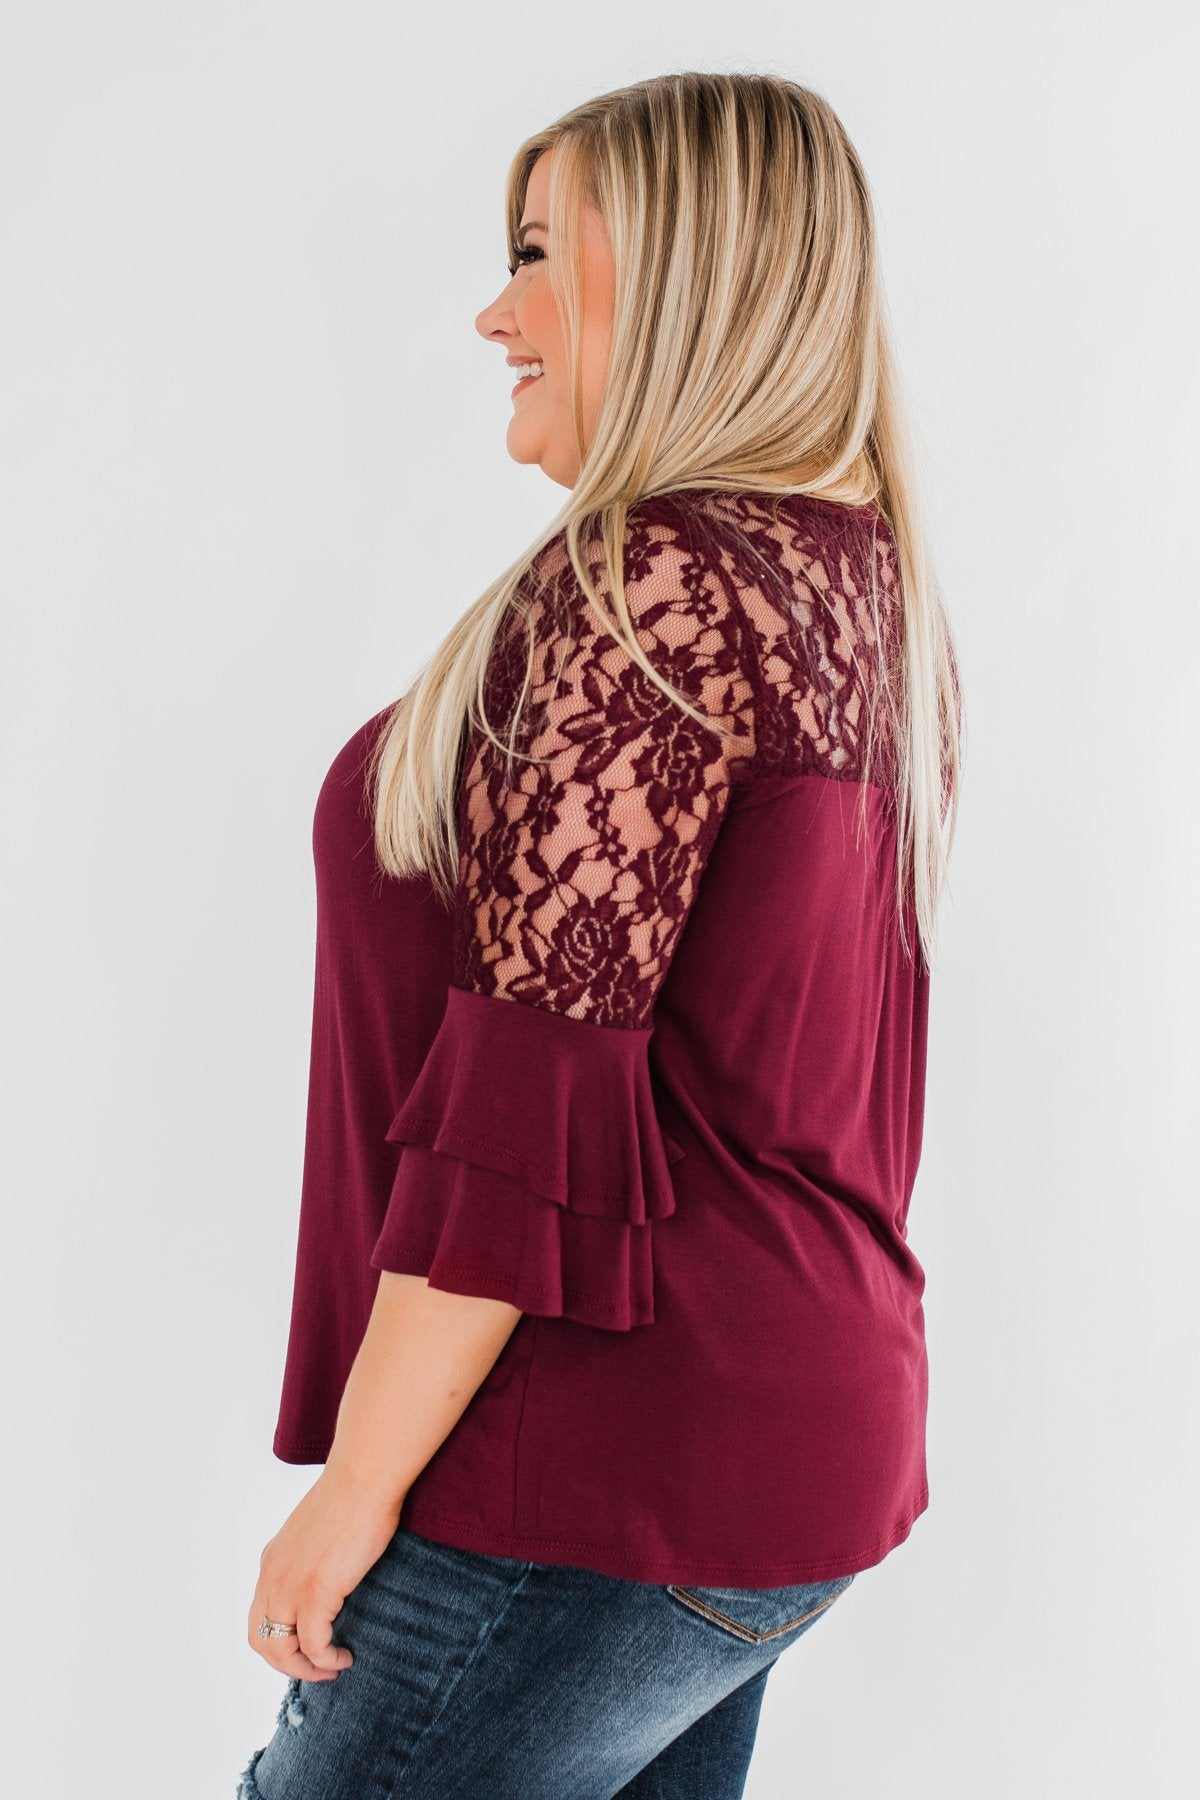 Right Beside Me Lace & Ruffles Top- Burgundy